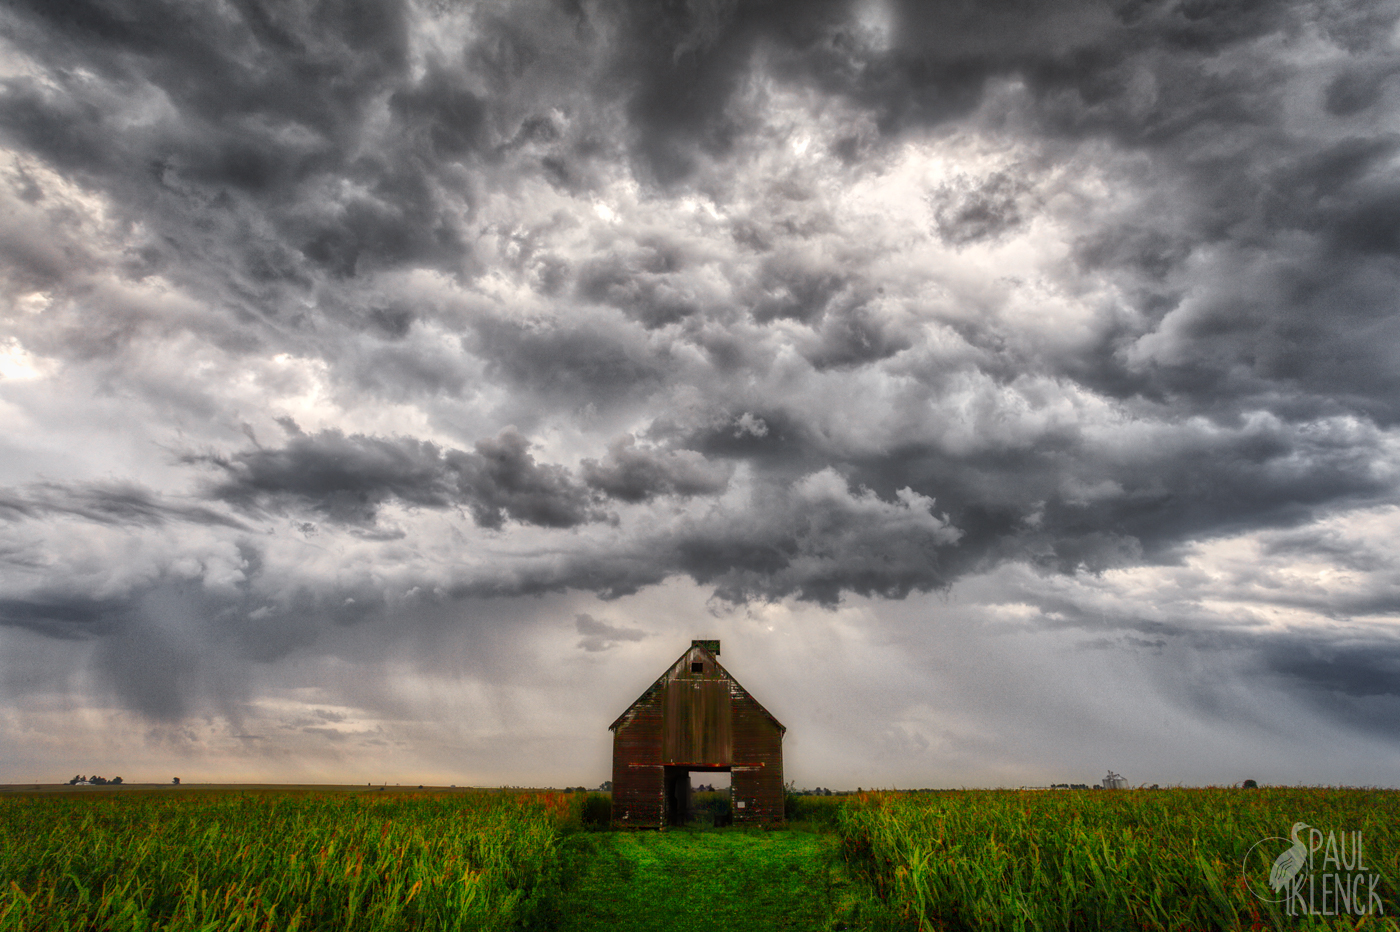 Storm clouds over the crib